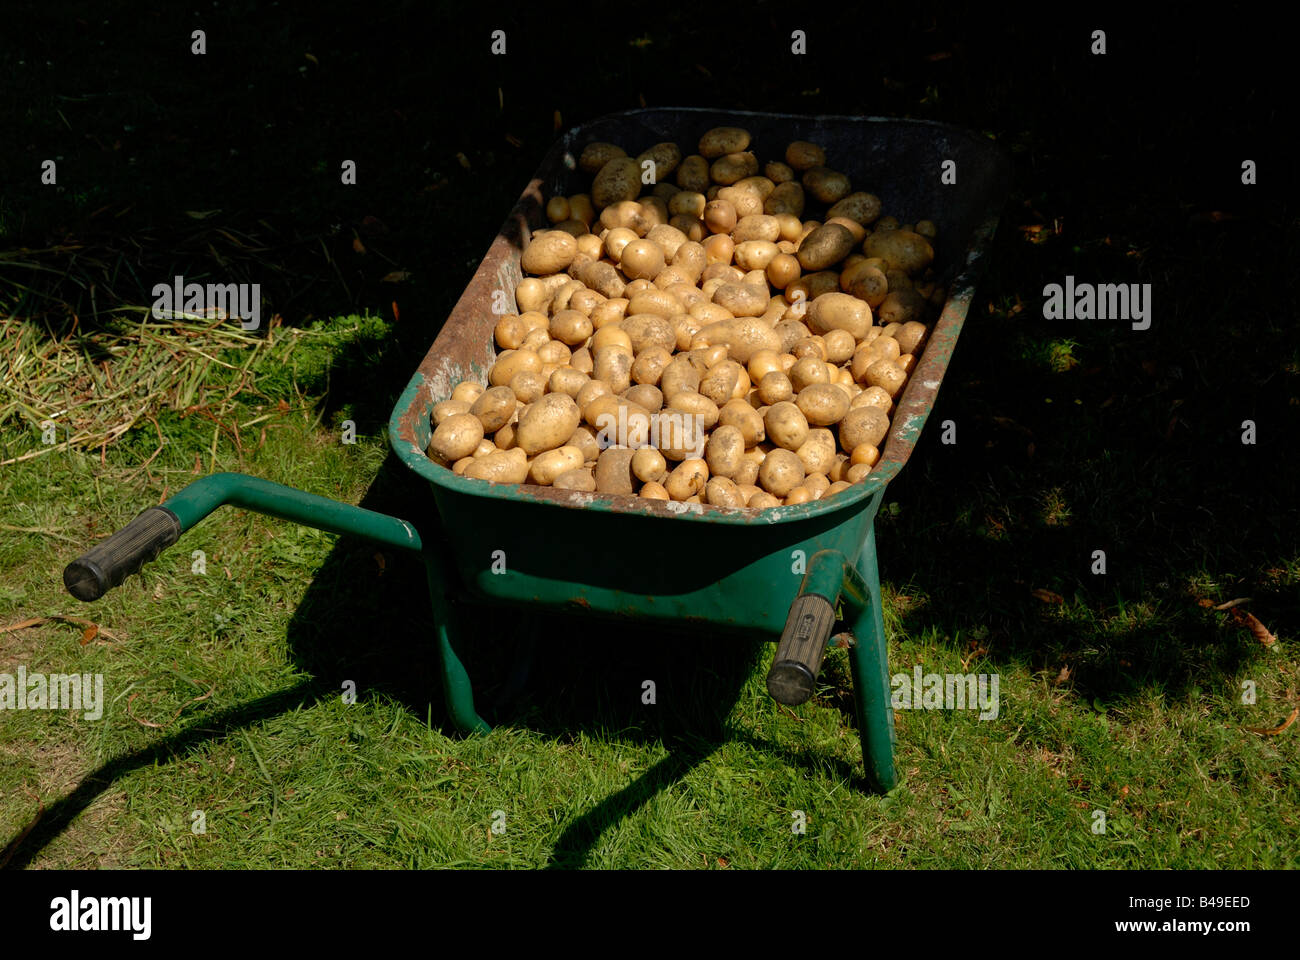 Stock photo of a pile of potatoes in a wheelbarrow The potatoes are ready for storage for Winter - Stock Image